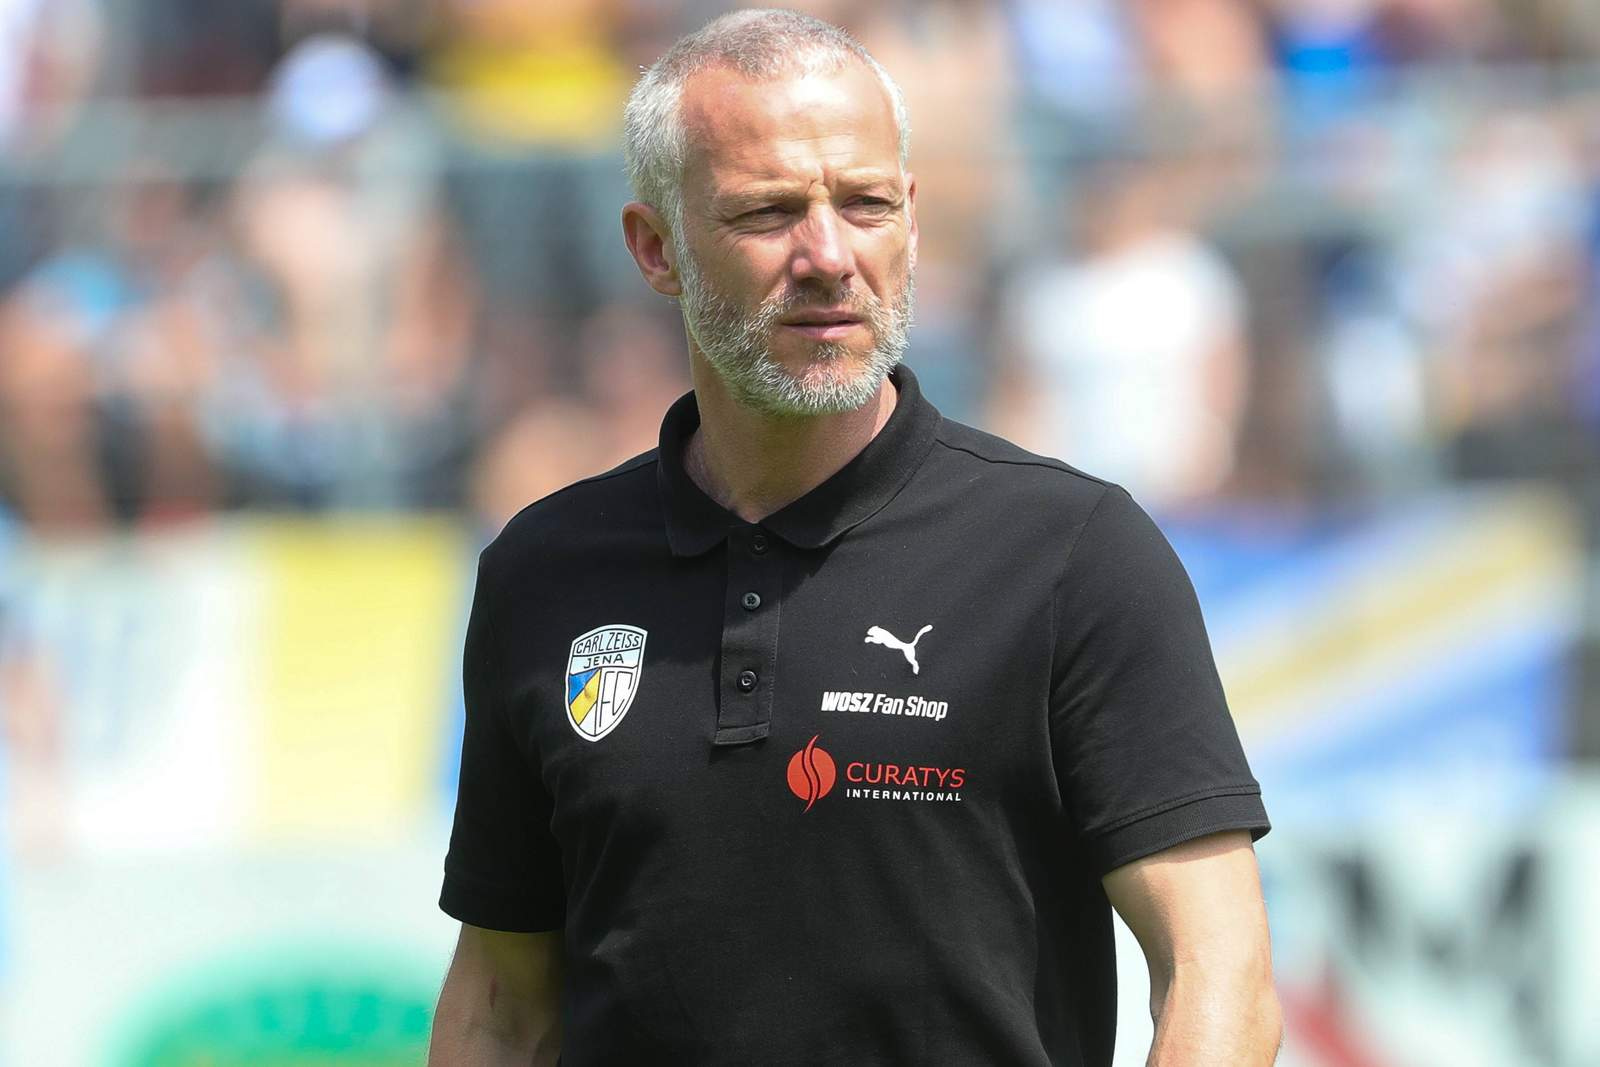 Mark Zimmermann, Trainer des FC Carl Zeiss Jena